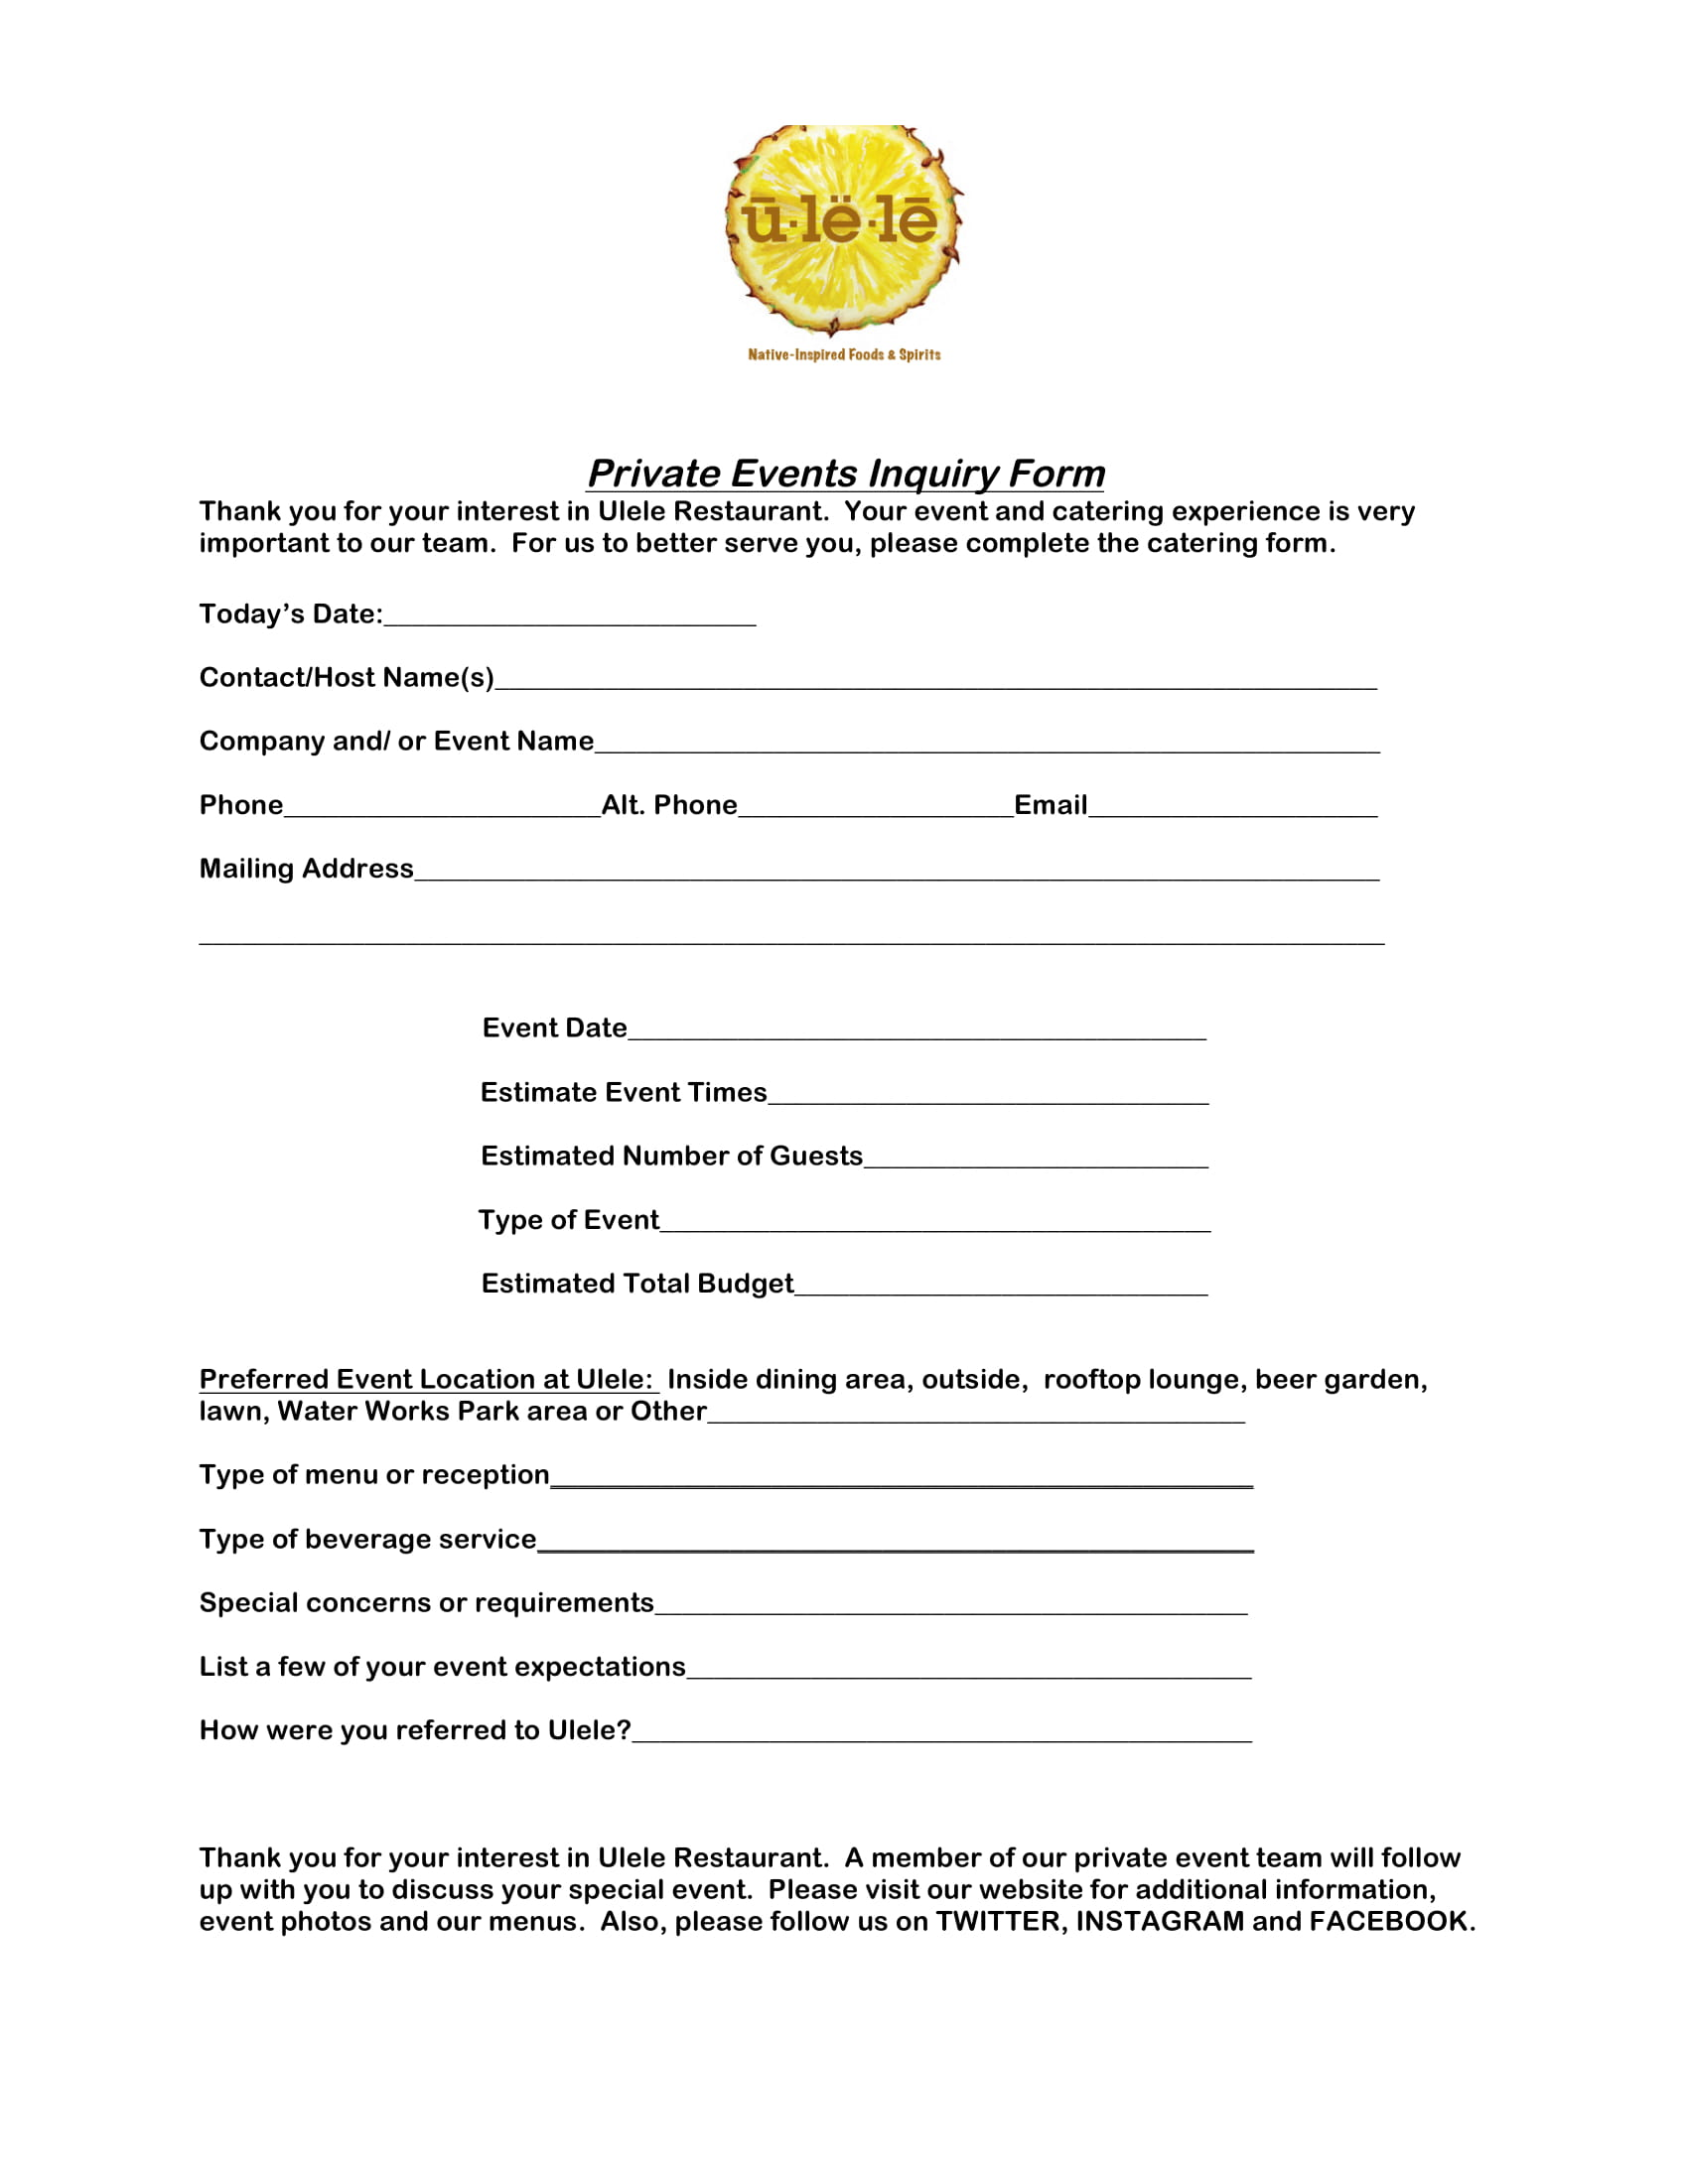 restaurant private events inquiry form 1